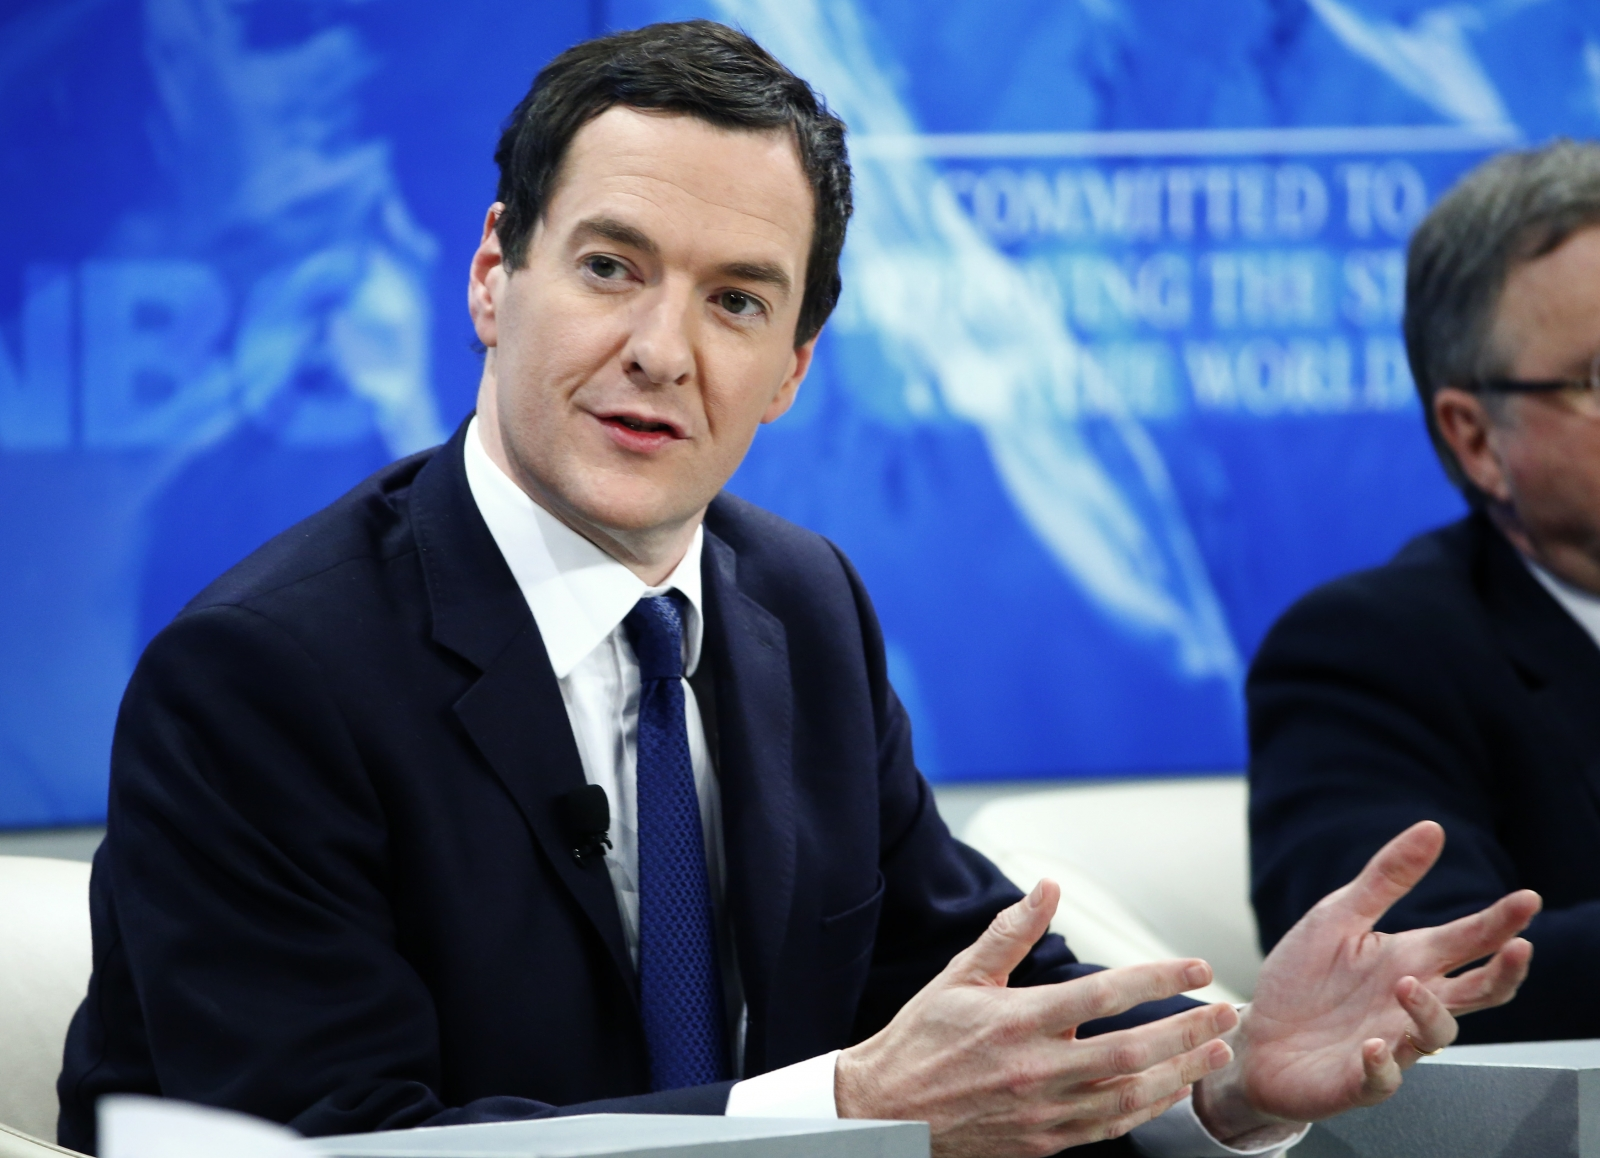 British Chancellor of the Exchequer George Osborne speaks at the session 'Recharging Europe' in the Swiss mountain resort of Davos January 23, 2015